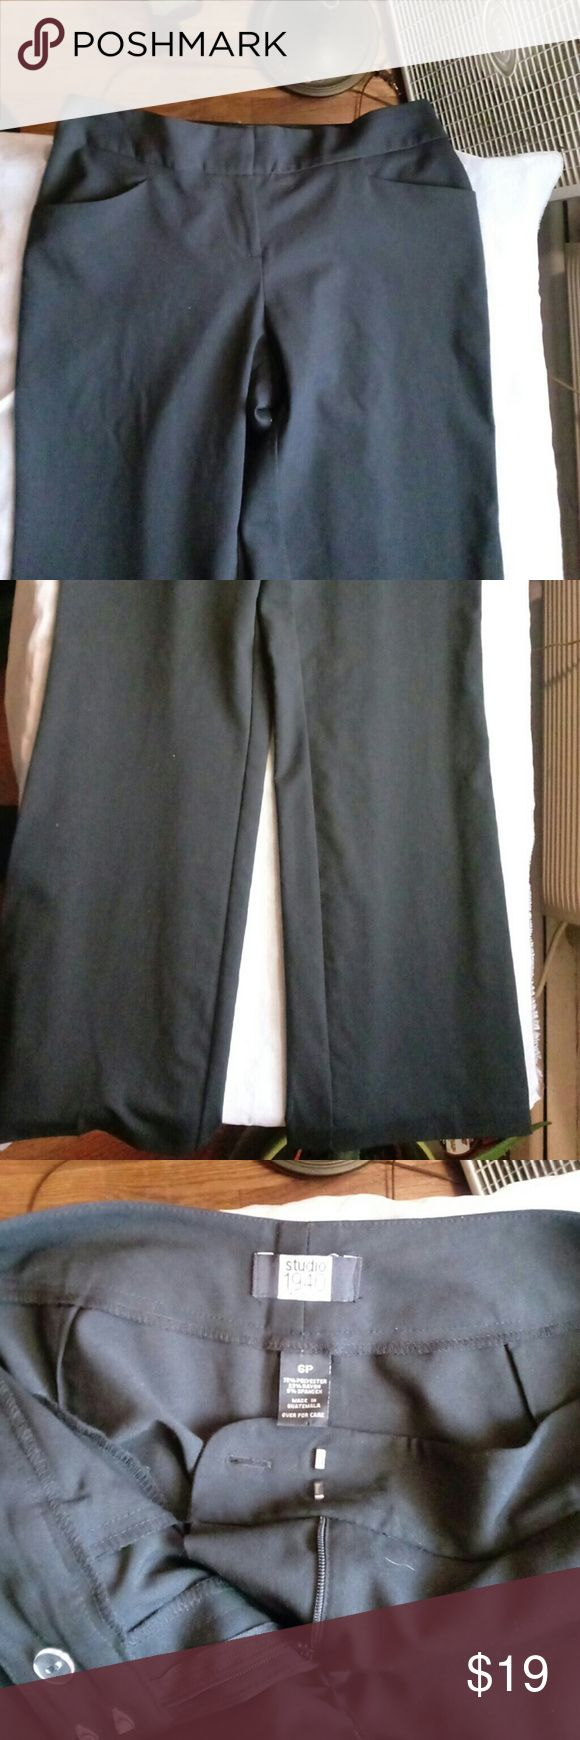 Studio 1940 petite black dress pants Black pants two pockets in front made from 72% polyester 23% rayon 5% spandex Studio 1940 Pants Straight Leg